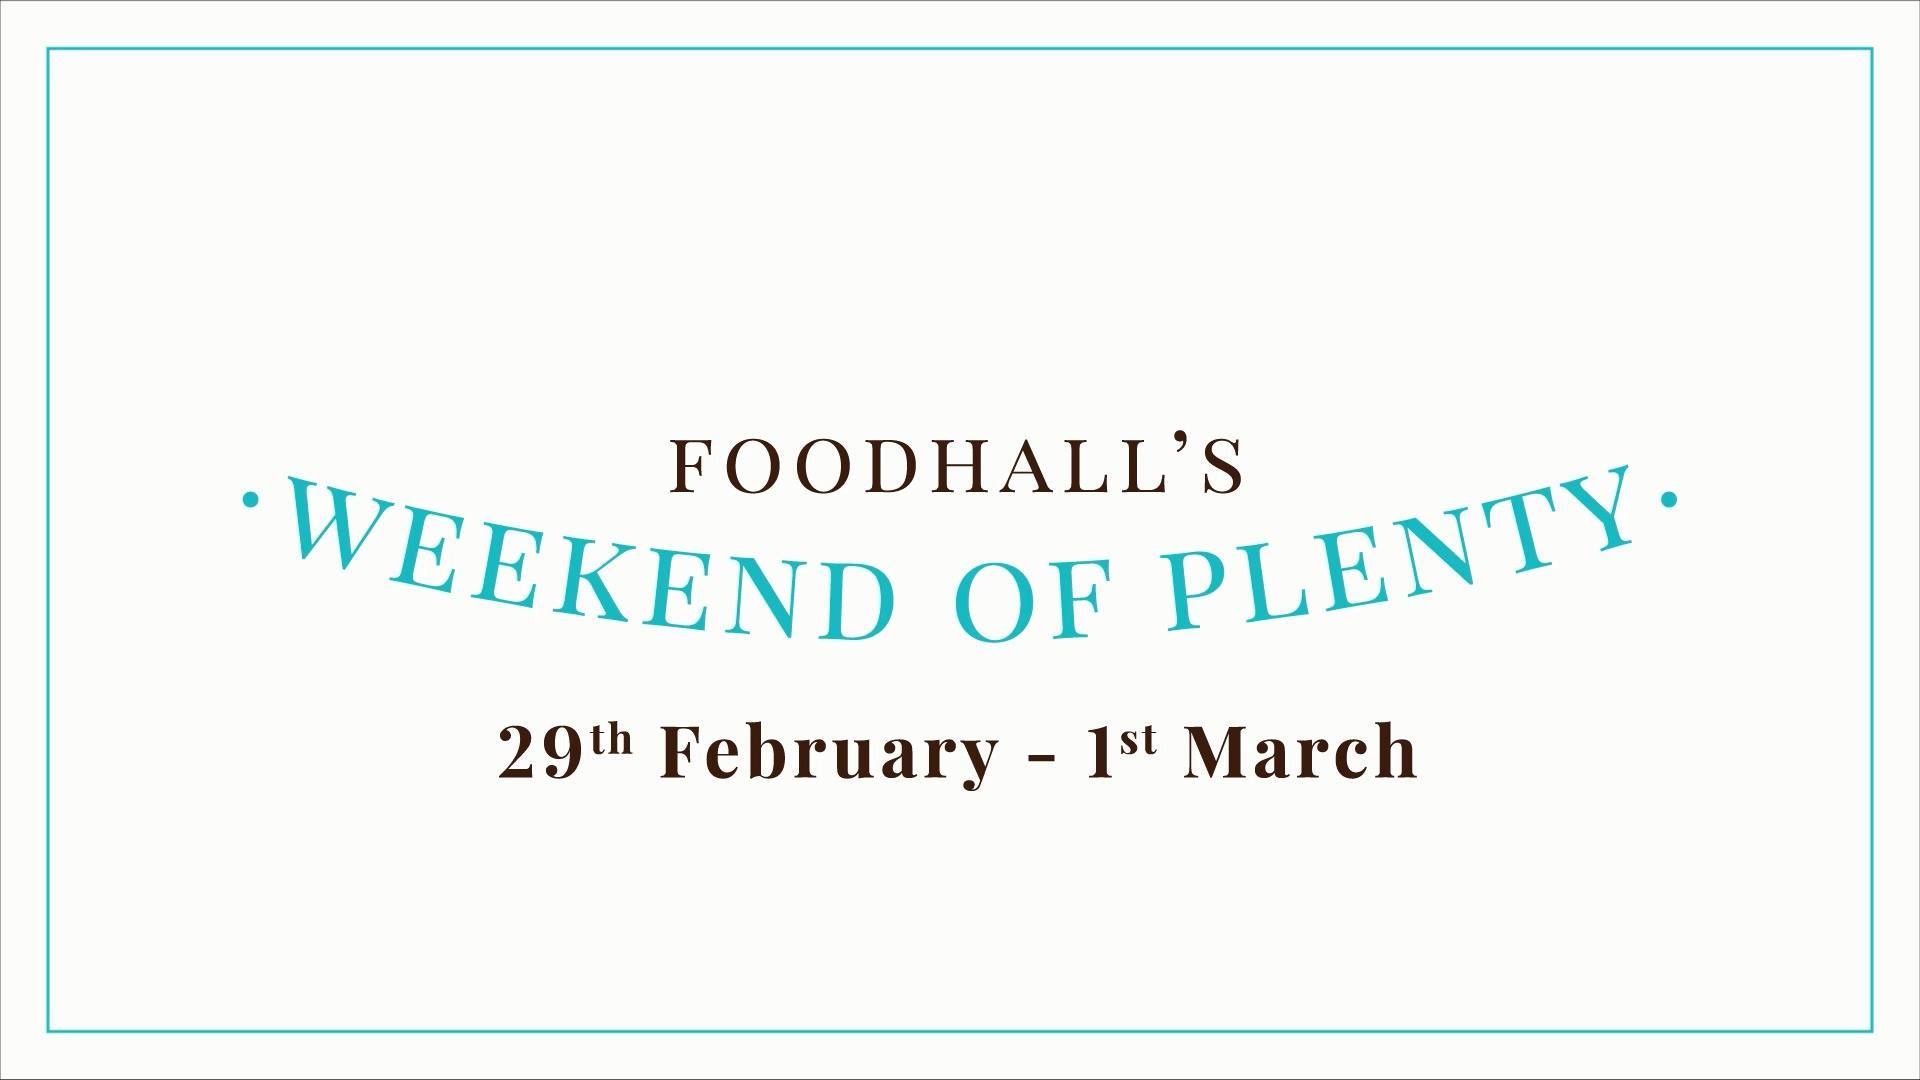 We're wishing for your wishlist to come true in leaps and bounds at Foodhall's Weekend of Plenty, the biggest epicurean extravaganza of the year yet!  Follow the link in our bio and sign up now for exclusive access to vouchers worth INR 2250/- on purchases worth INR 5000/-  This leap year, #YouShopYouGain, only at a Foodhall near you!   #FoodhallIndia #WeekendofPlenty #LeapDayVouchers #LeapDayOfferings #LeapDayWeekend